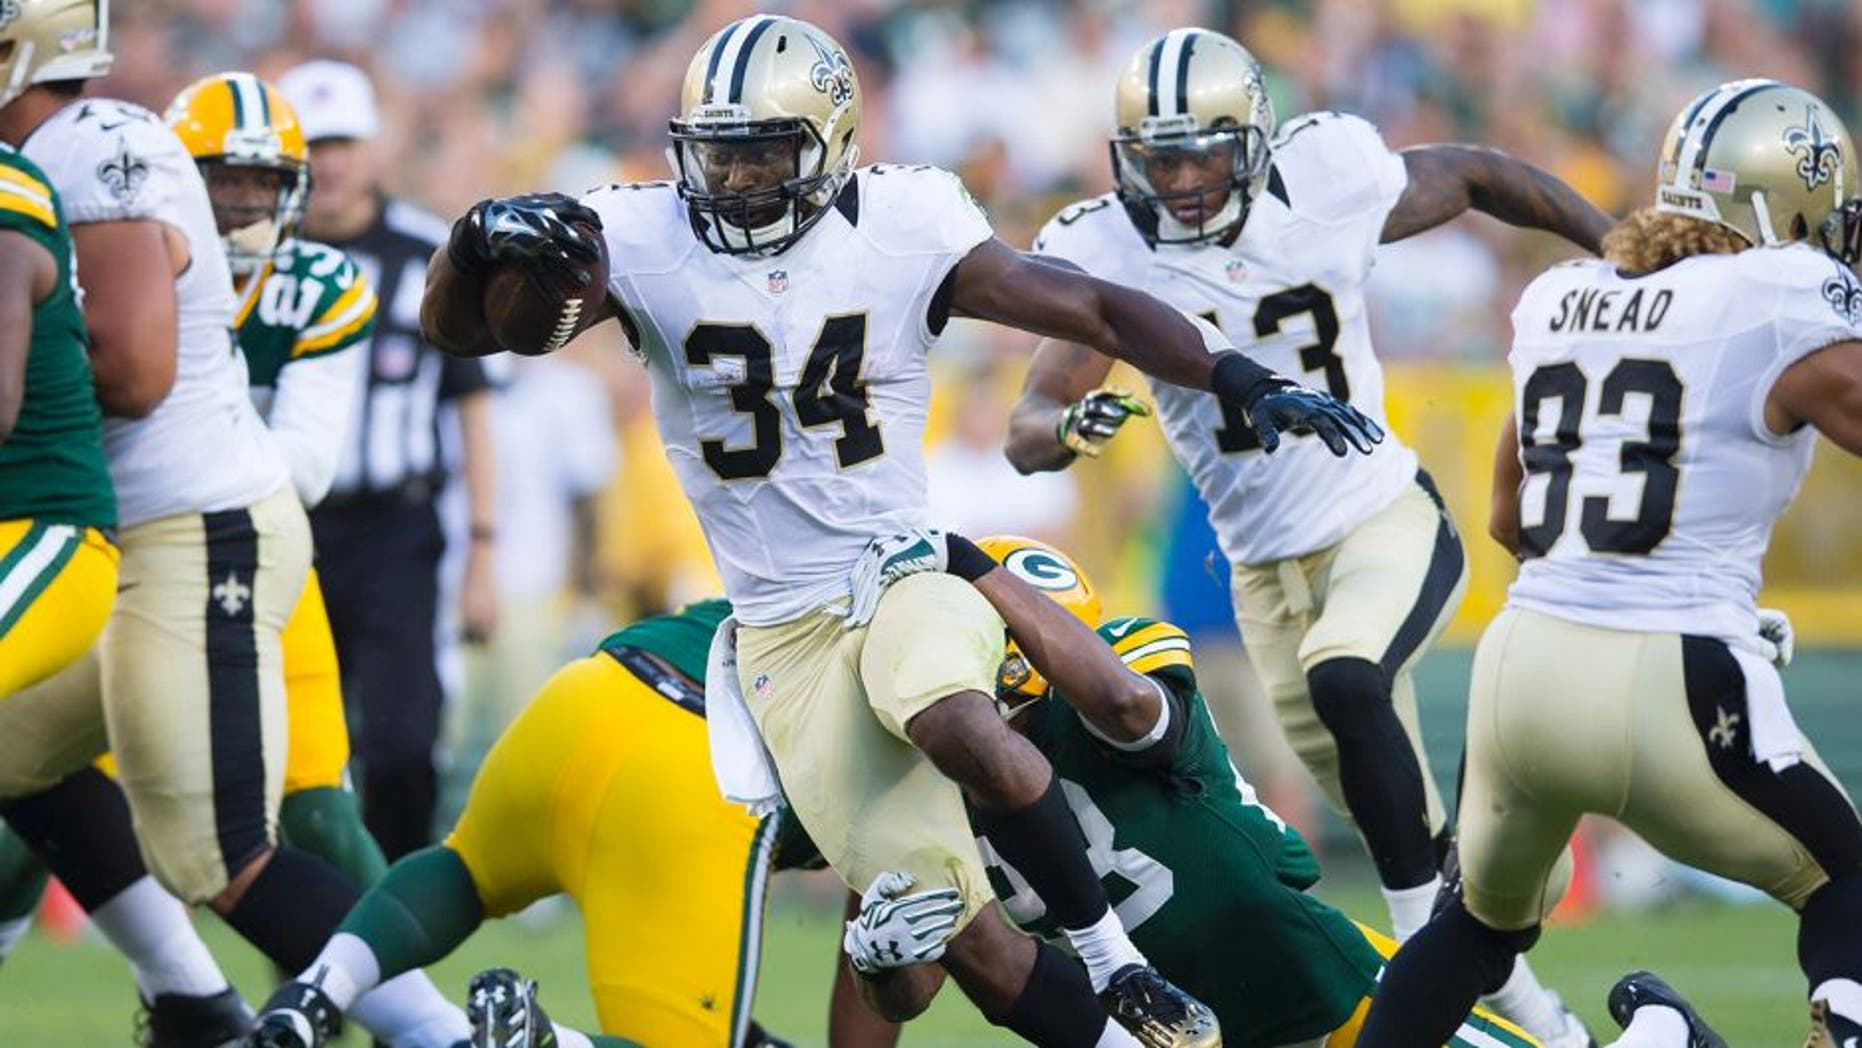 Sep 3, 2015; Green Bay, WI, USA; New Orleans Saints running back Tim Hightower (34) rushes with the football during the first quarter against the Green Bay Packers at Lambeau Field. Mandatory Credit: Jeff Hanisch-USA TODAY Sports